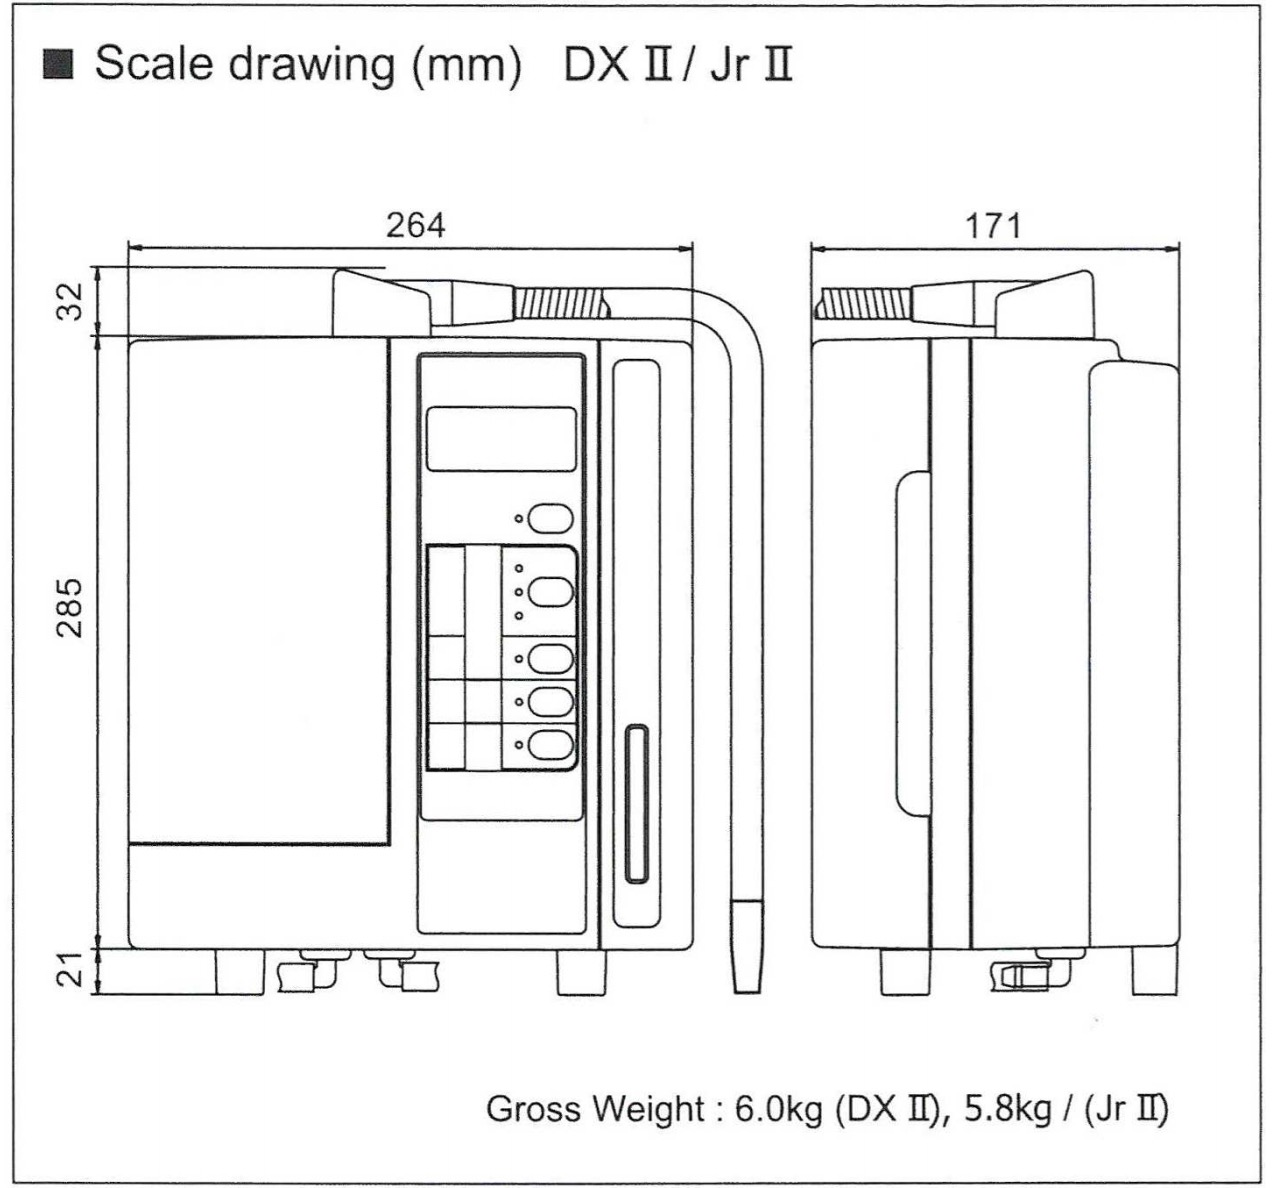 LeveLuk JR II Scale Drawing